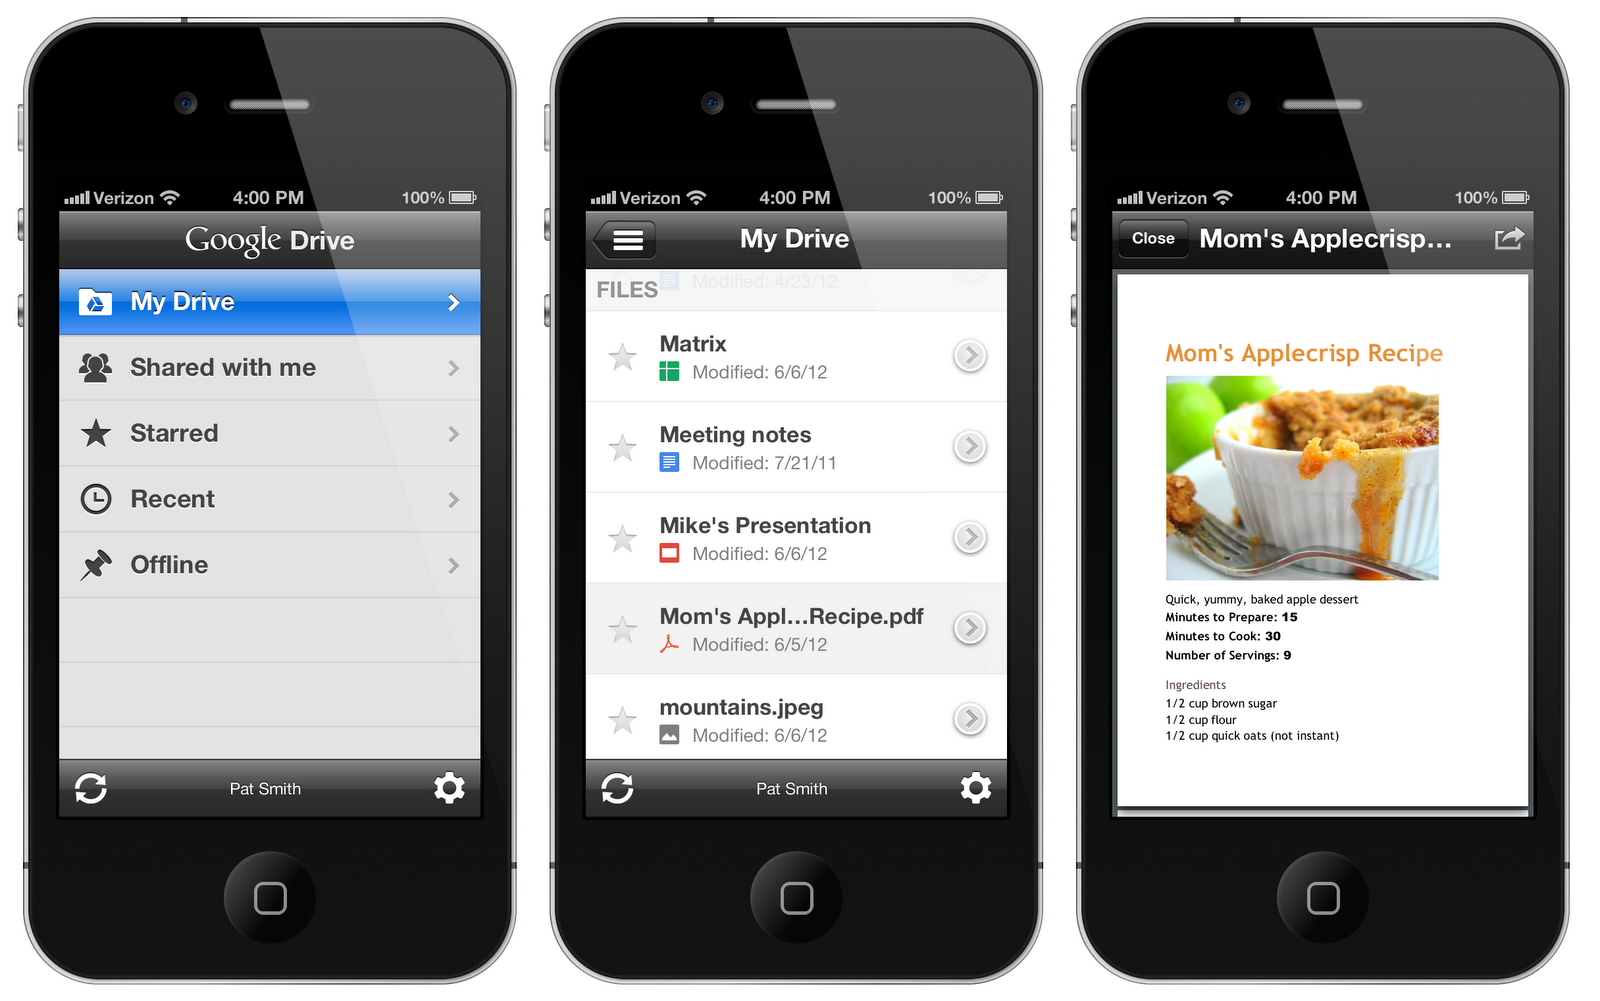 Google Drive is available on iPhone, iPad and iPod Touch from today